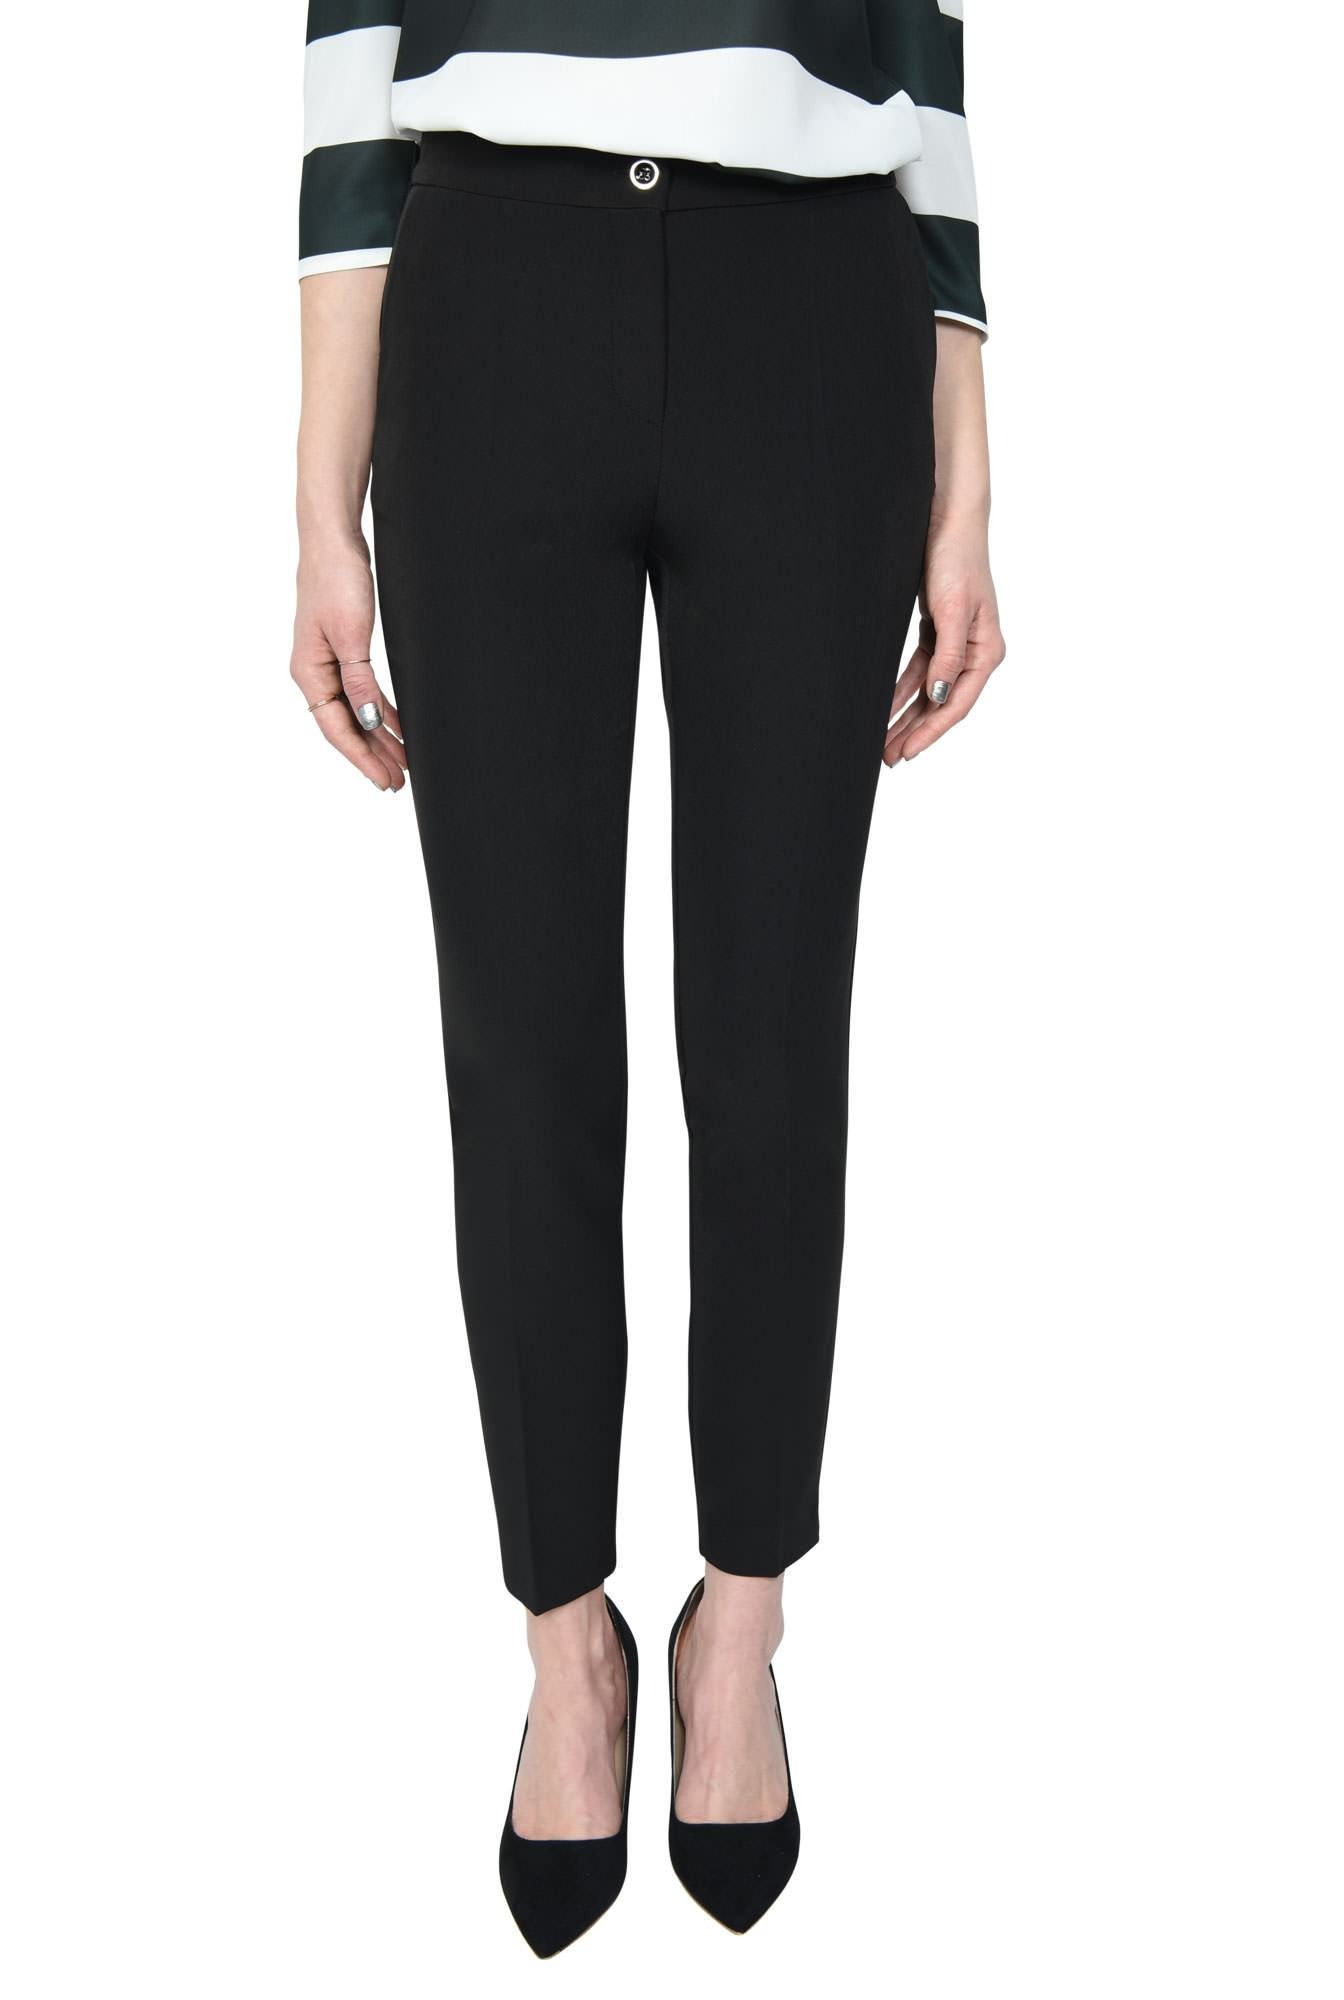 PANTALON OFFICE CONIC PT 133-NEGRU